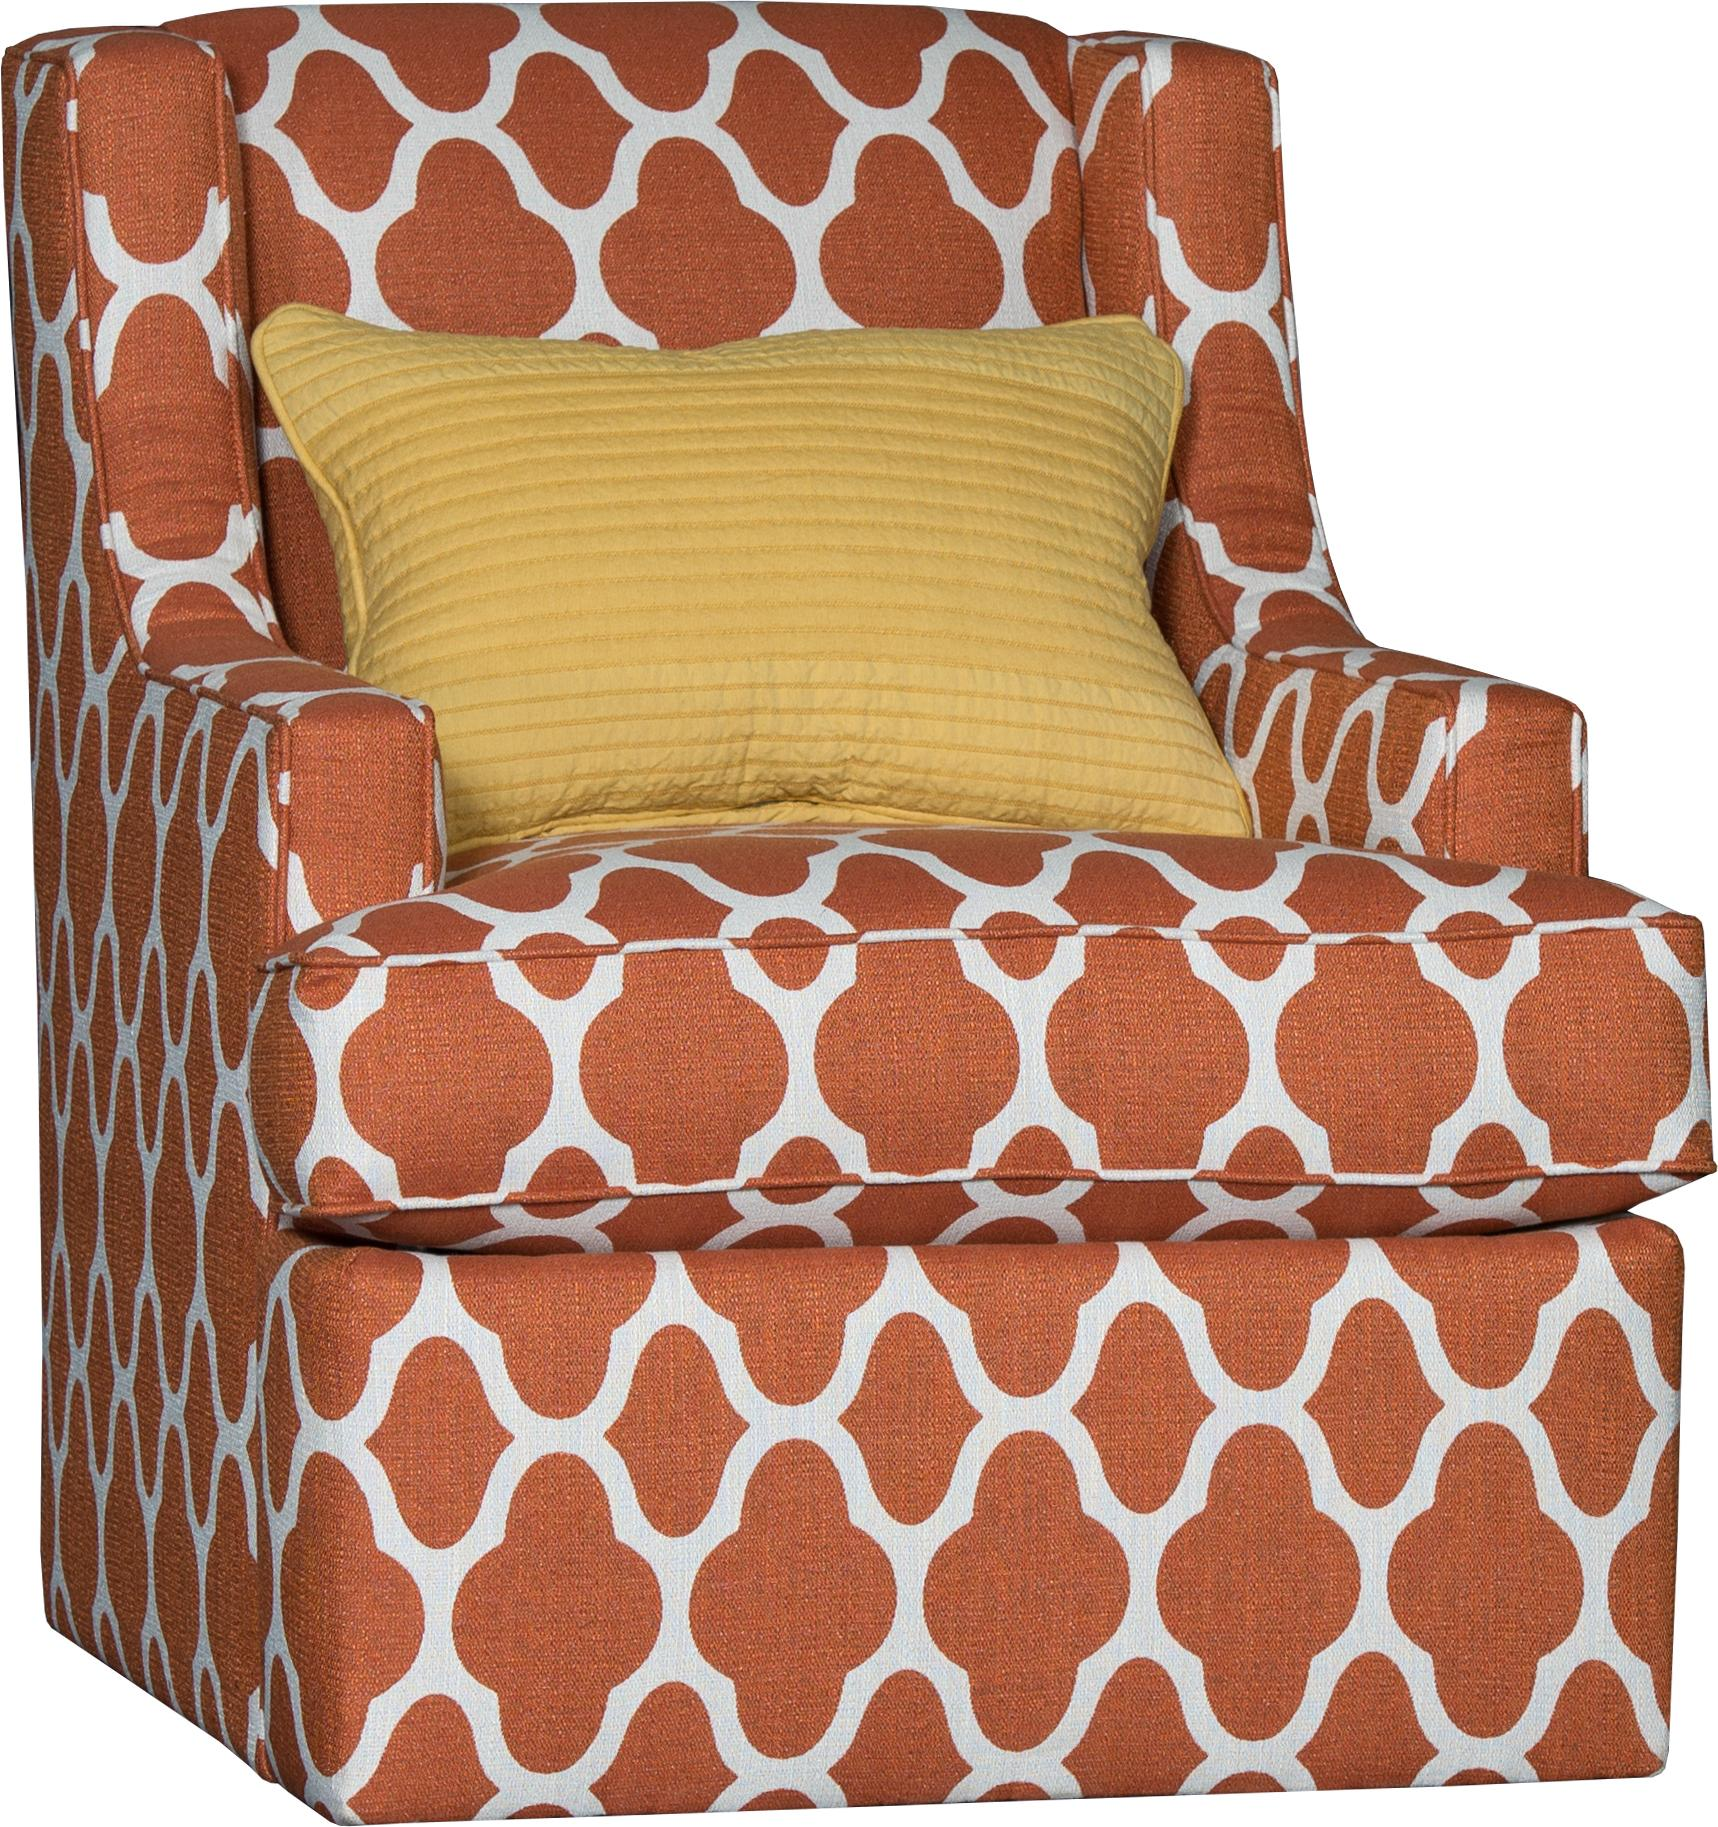 2800 Chair by Mayo at Wilson's Furniture